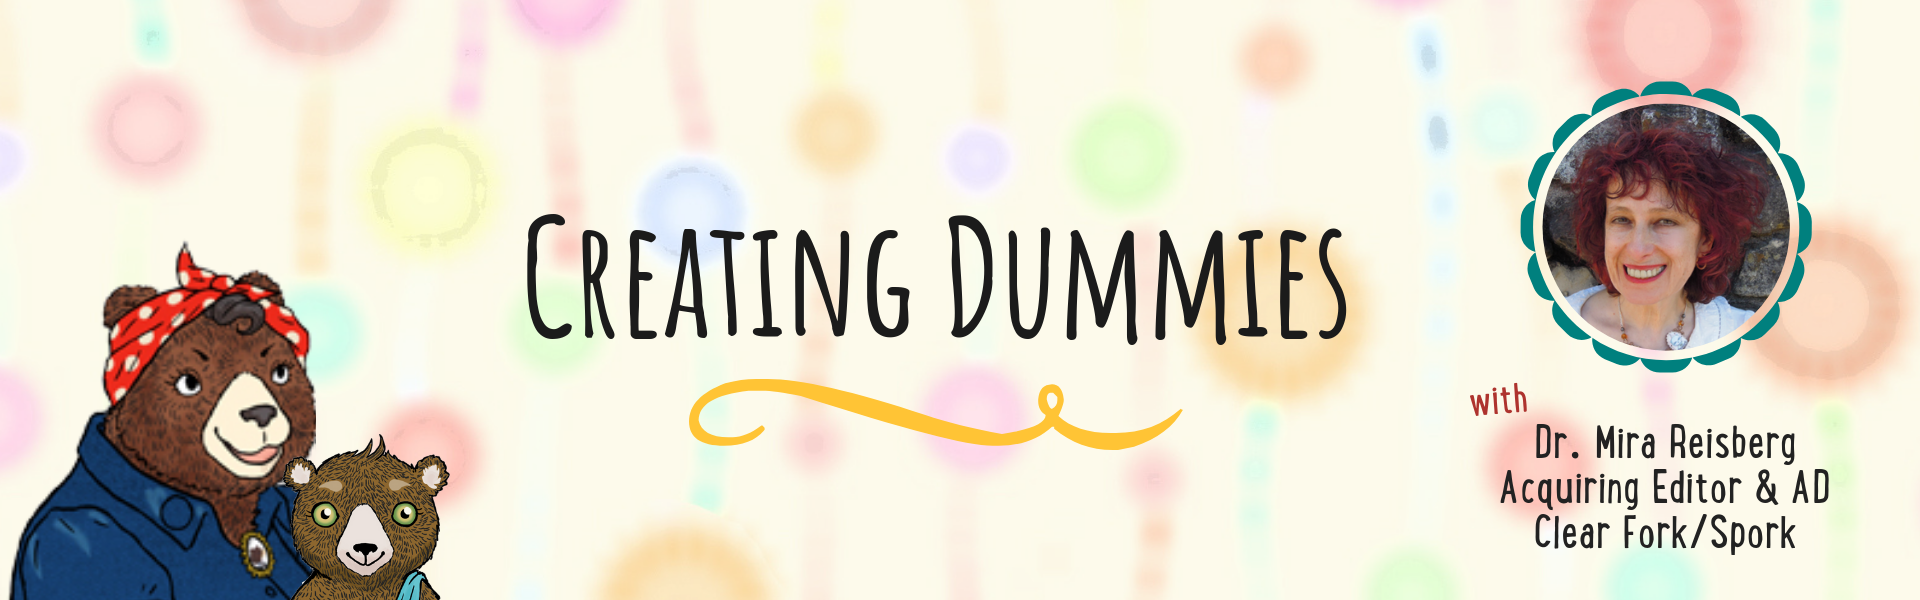 Creating Dummies with Dr. Mira Reisberg at the Children's Book Academy